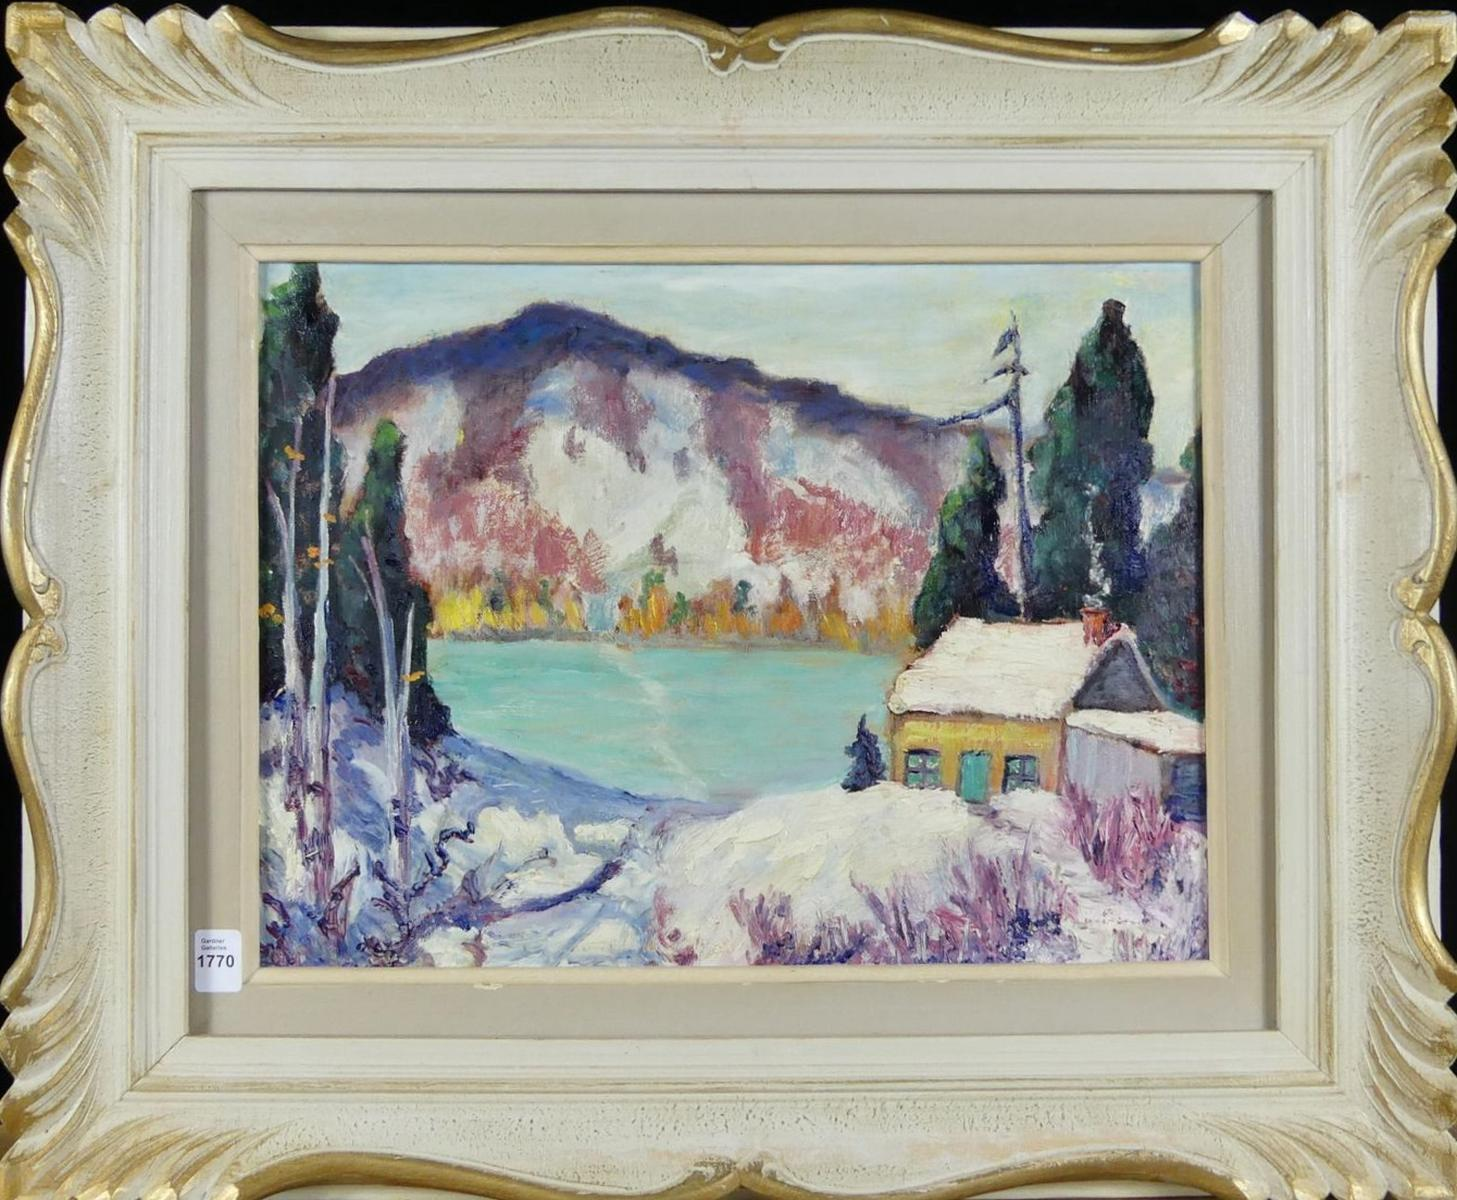 BROOCHES AND CLIPS